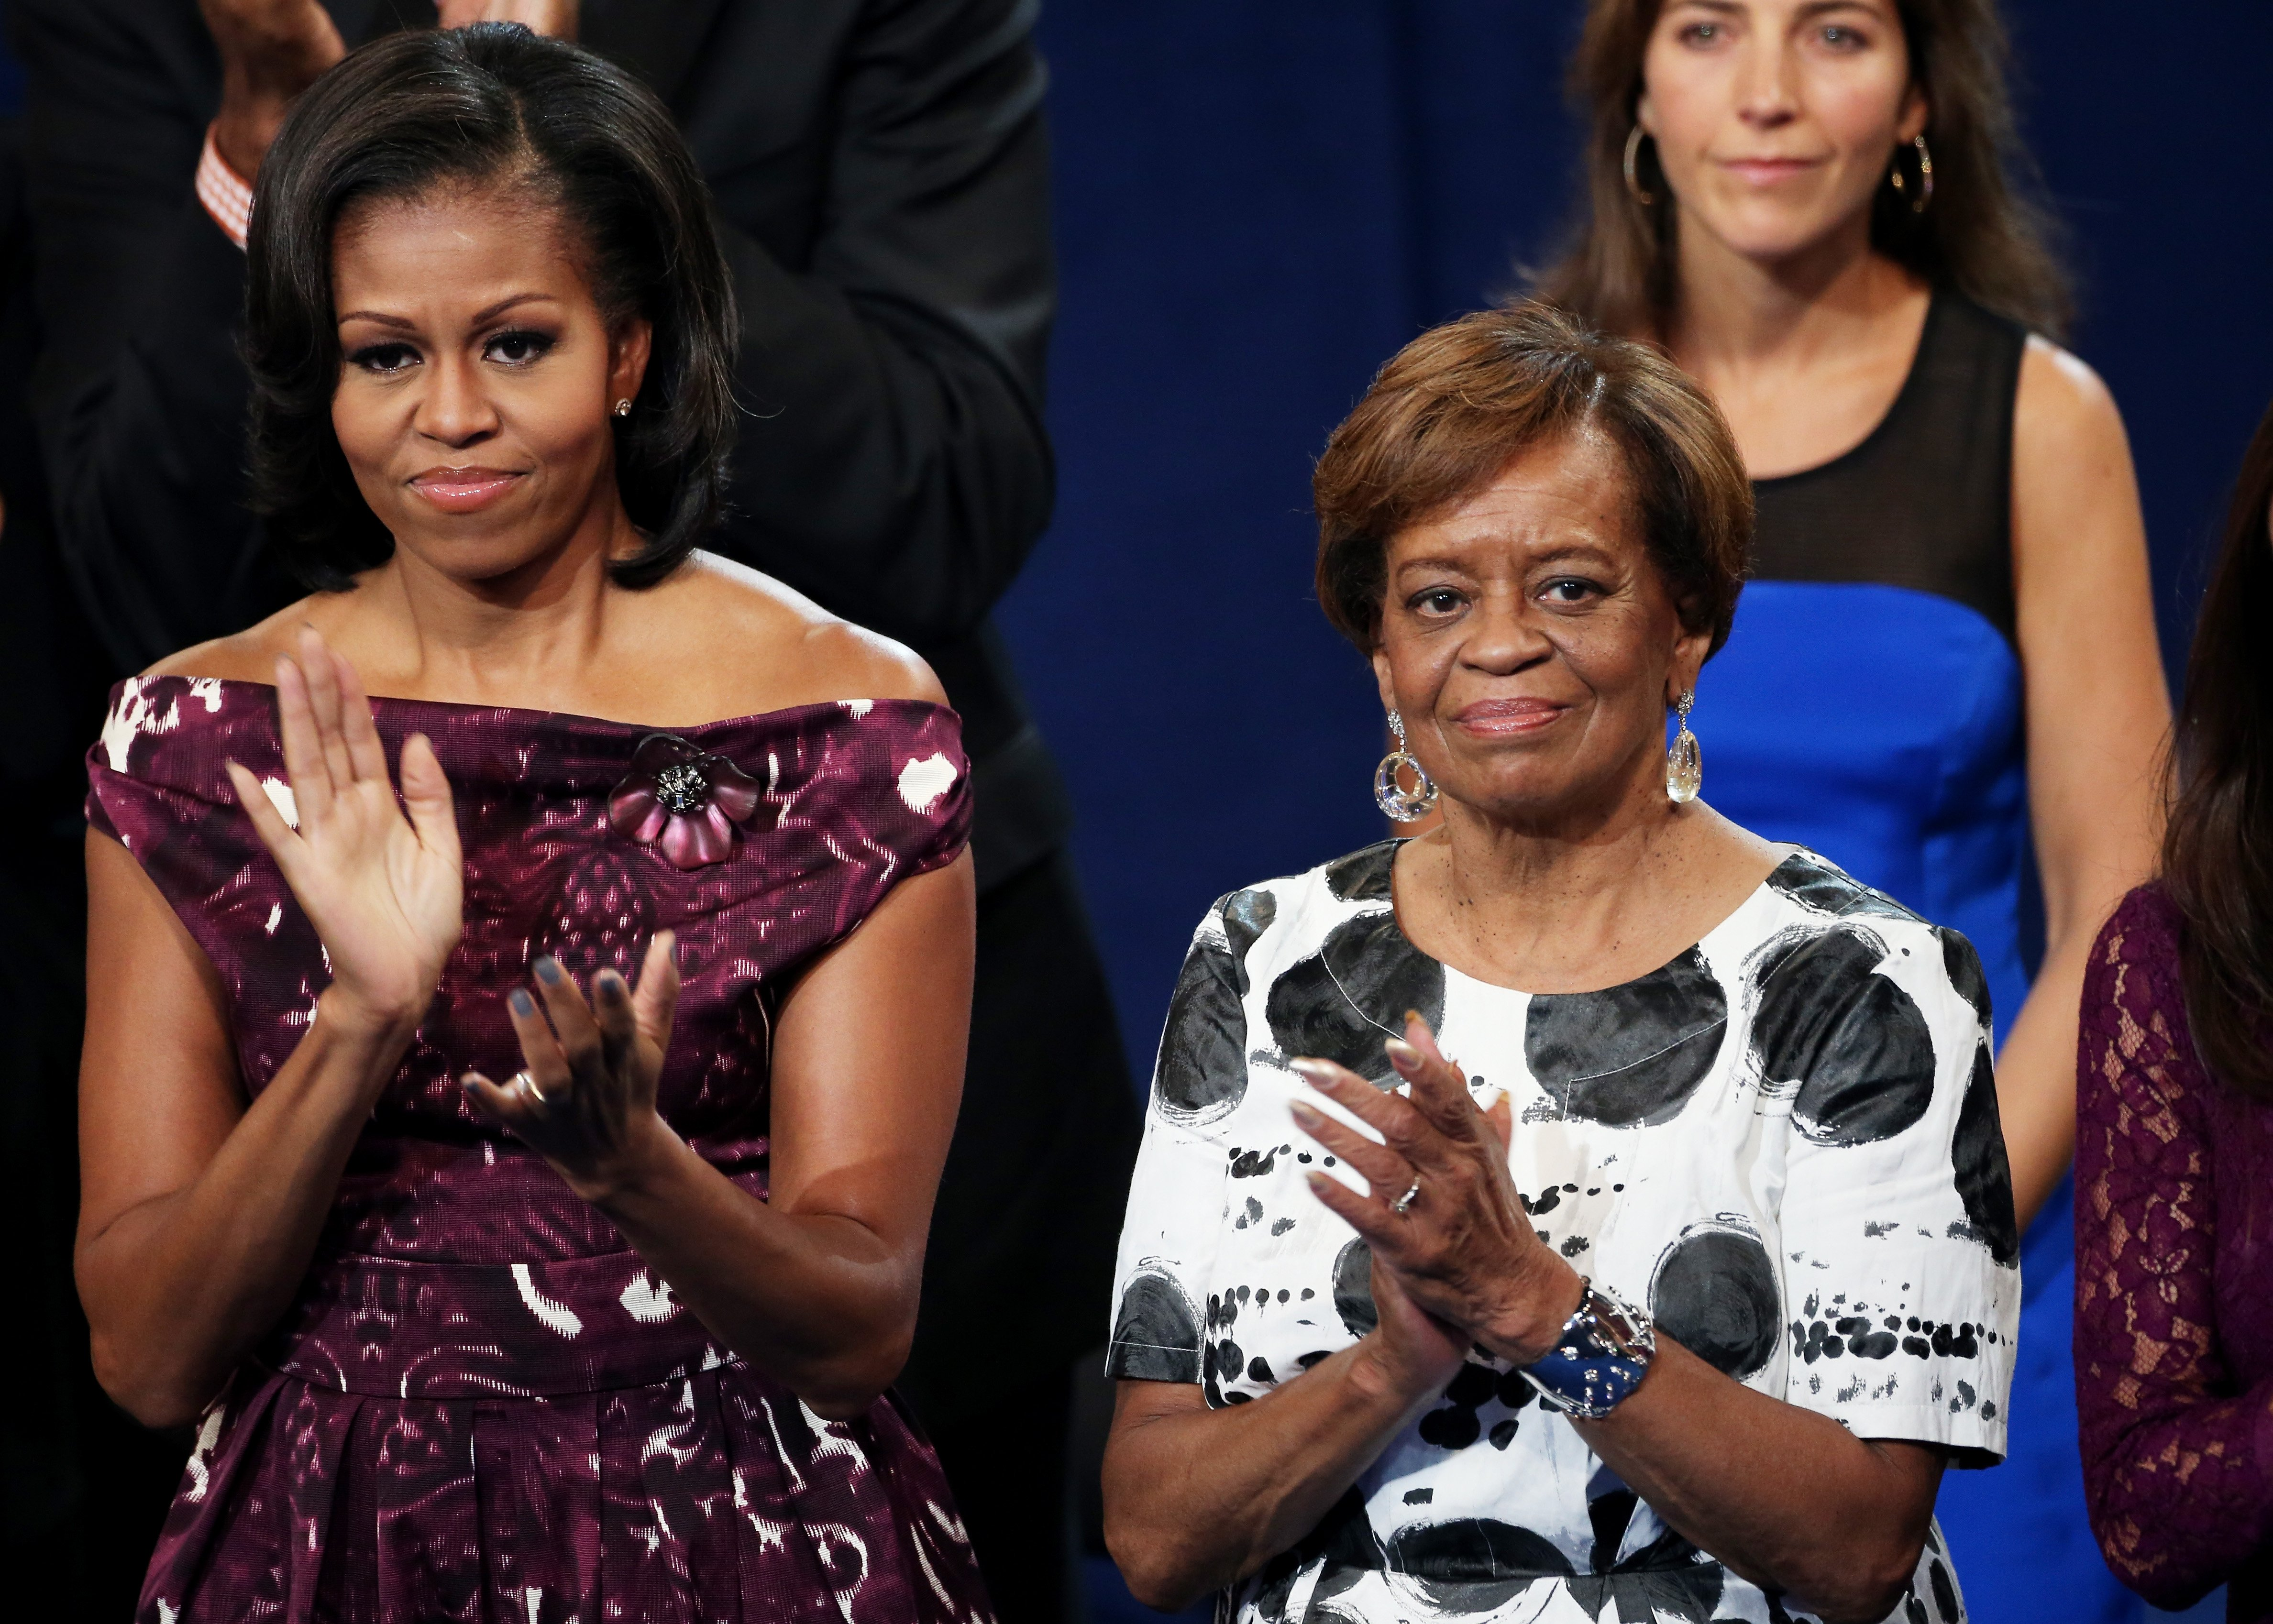 Michelle Obama with her mother Marian Robinson during the Democratic National Convention at Time Warner Cable Arena on September 6, 2012 | Photo: GettyImages